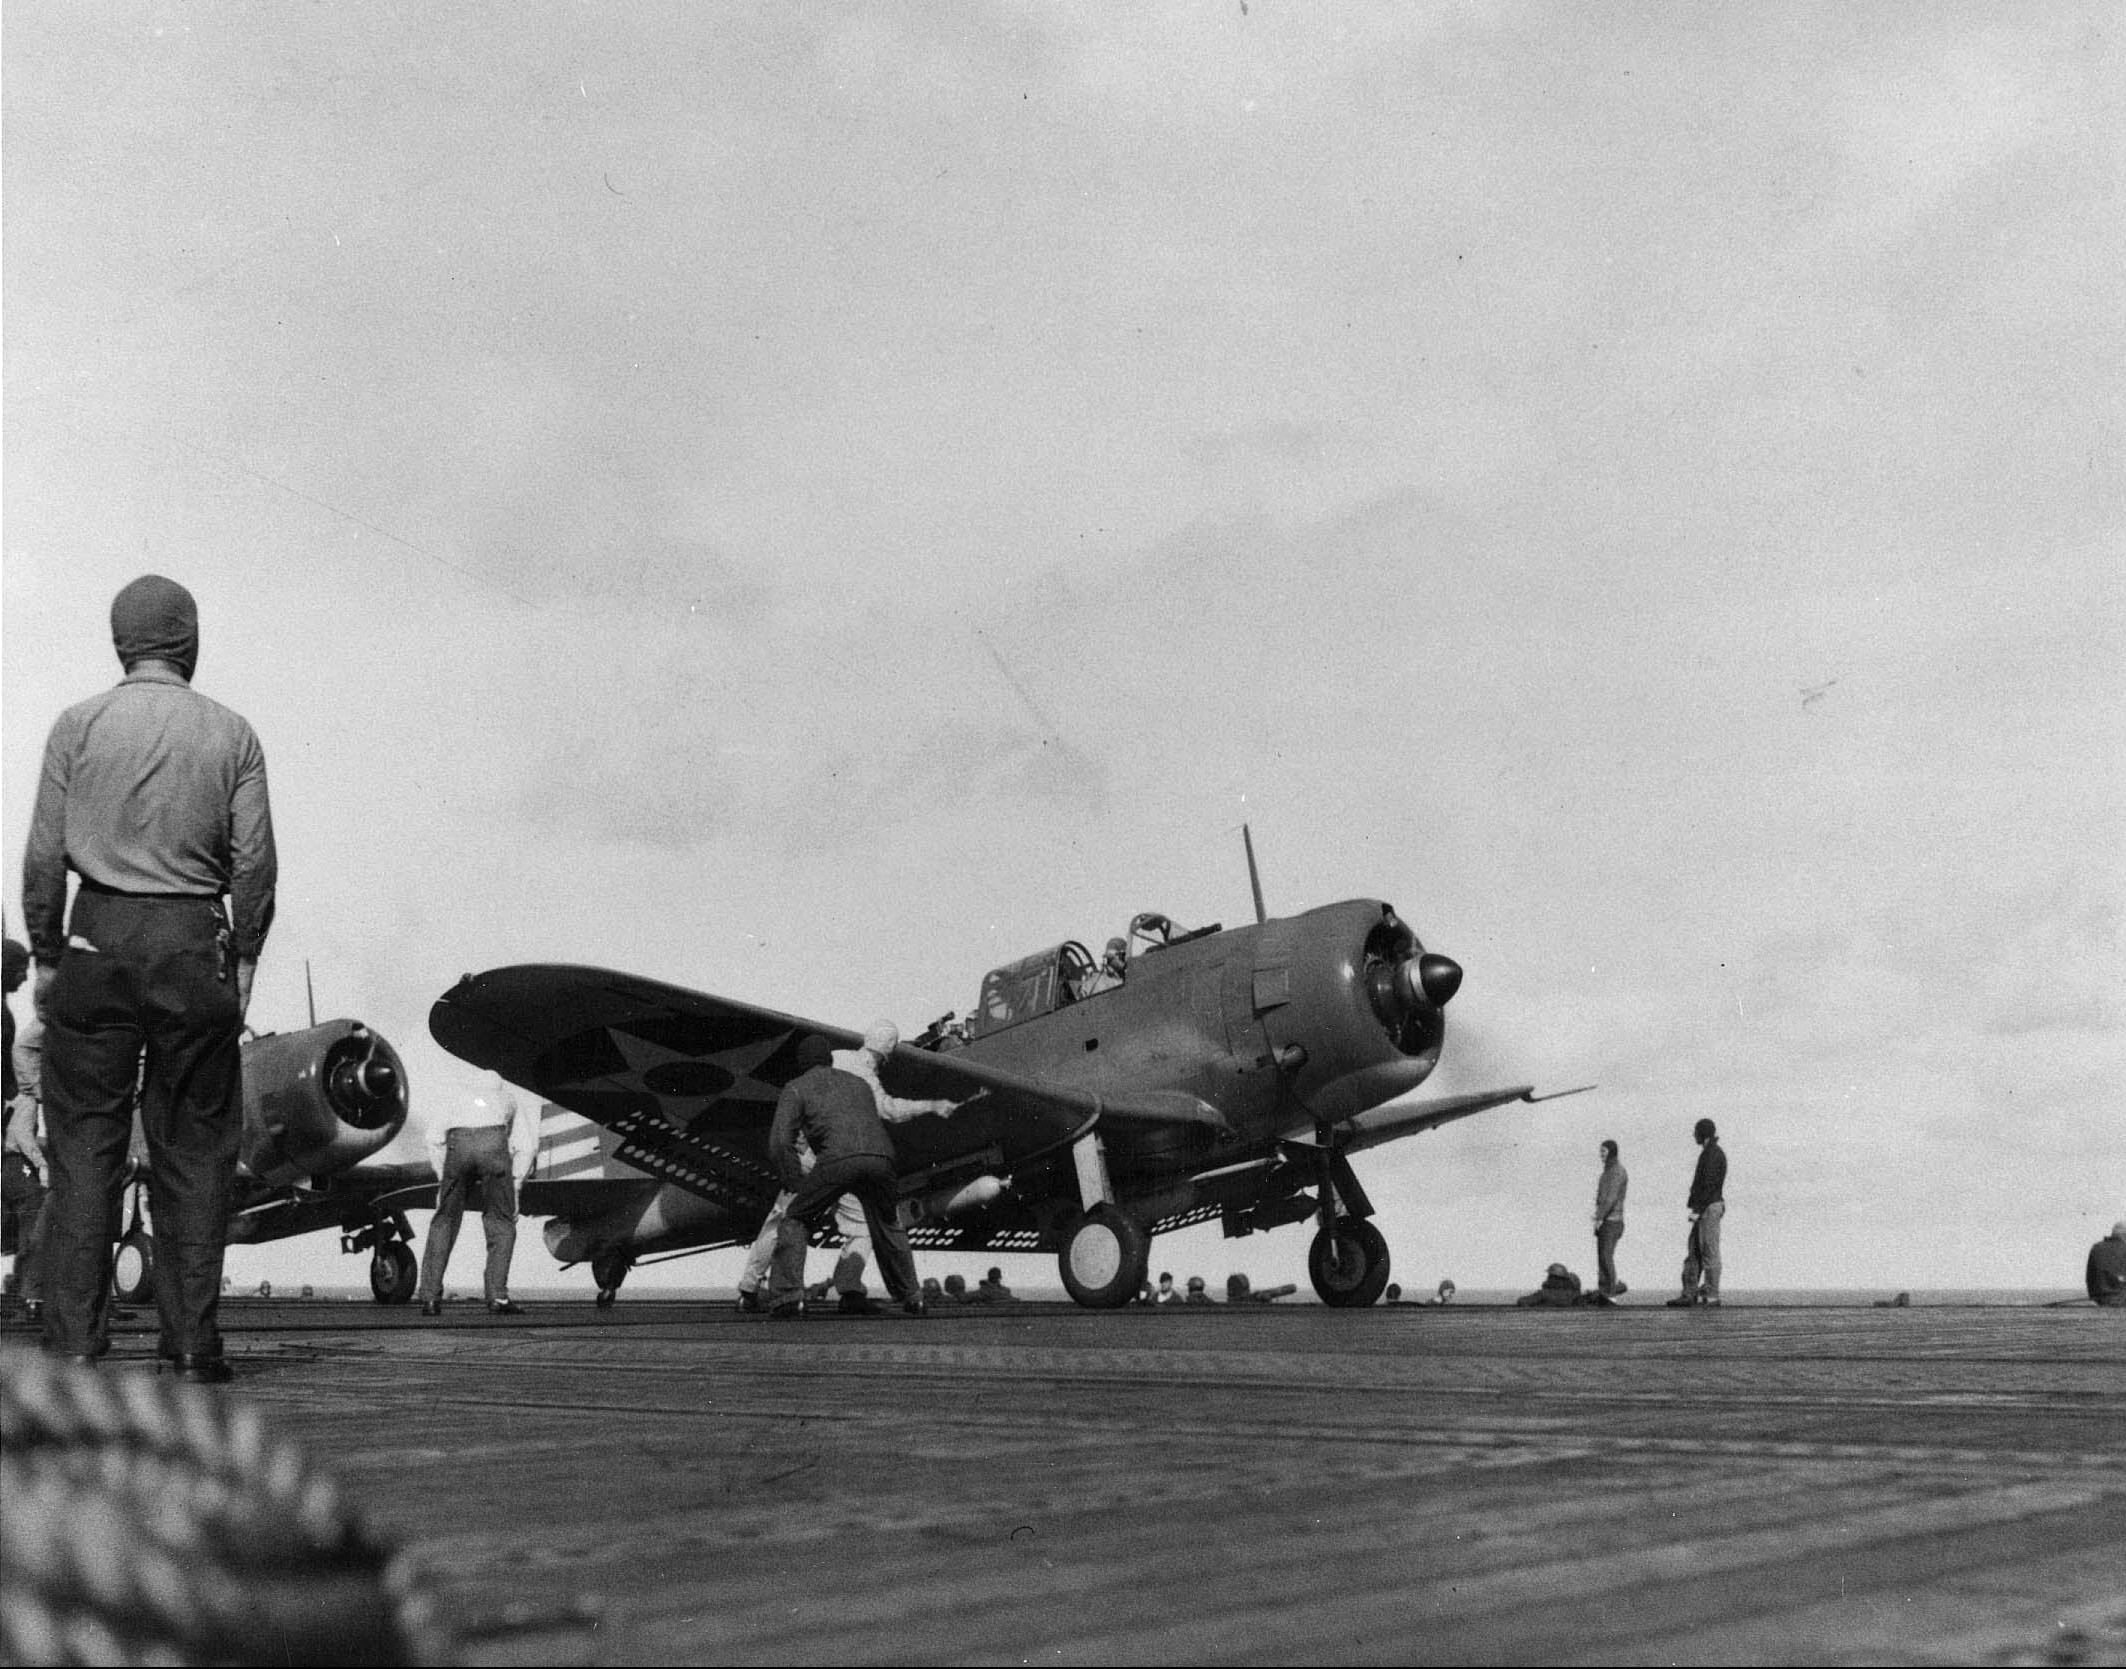 Bomb-laden SBD's prepare for takeoff from the USS Enterprise (CV-6) on Feb. 1, 1942 during the first U.S. strike on Kwajalein Atoll.